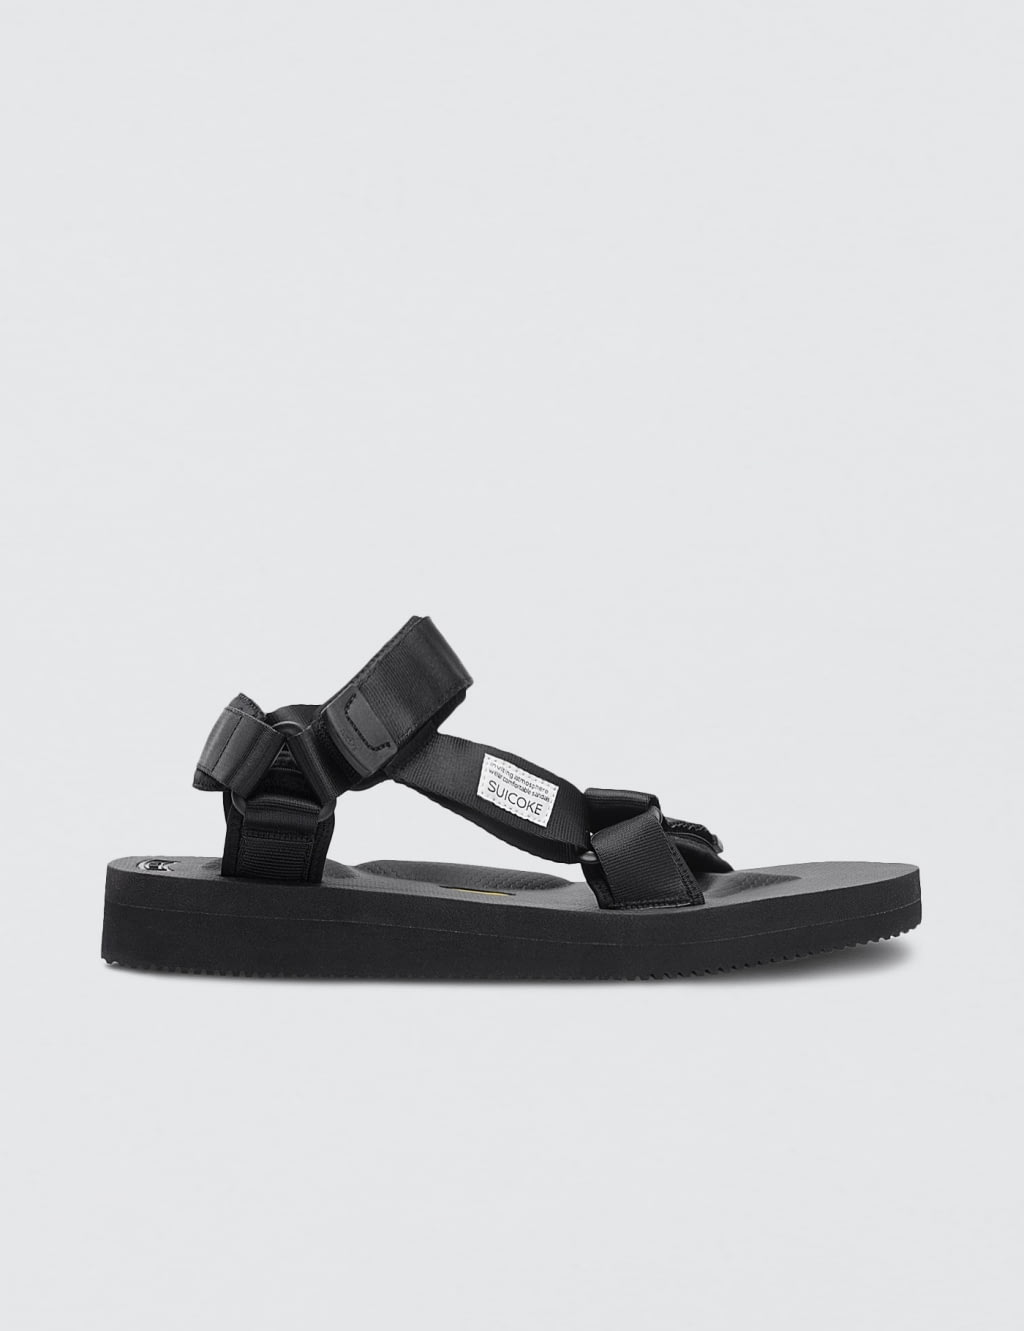 a90a8b9234d83e Suicoke DEPA V2 Sandals Products in 2018 t Sandals